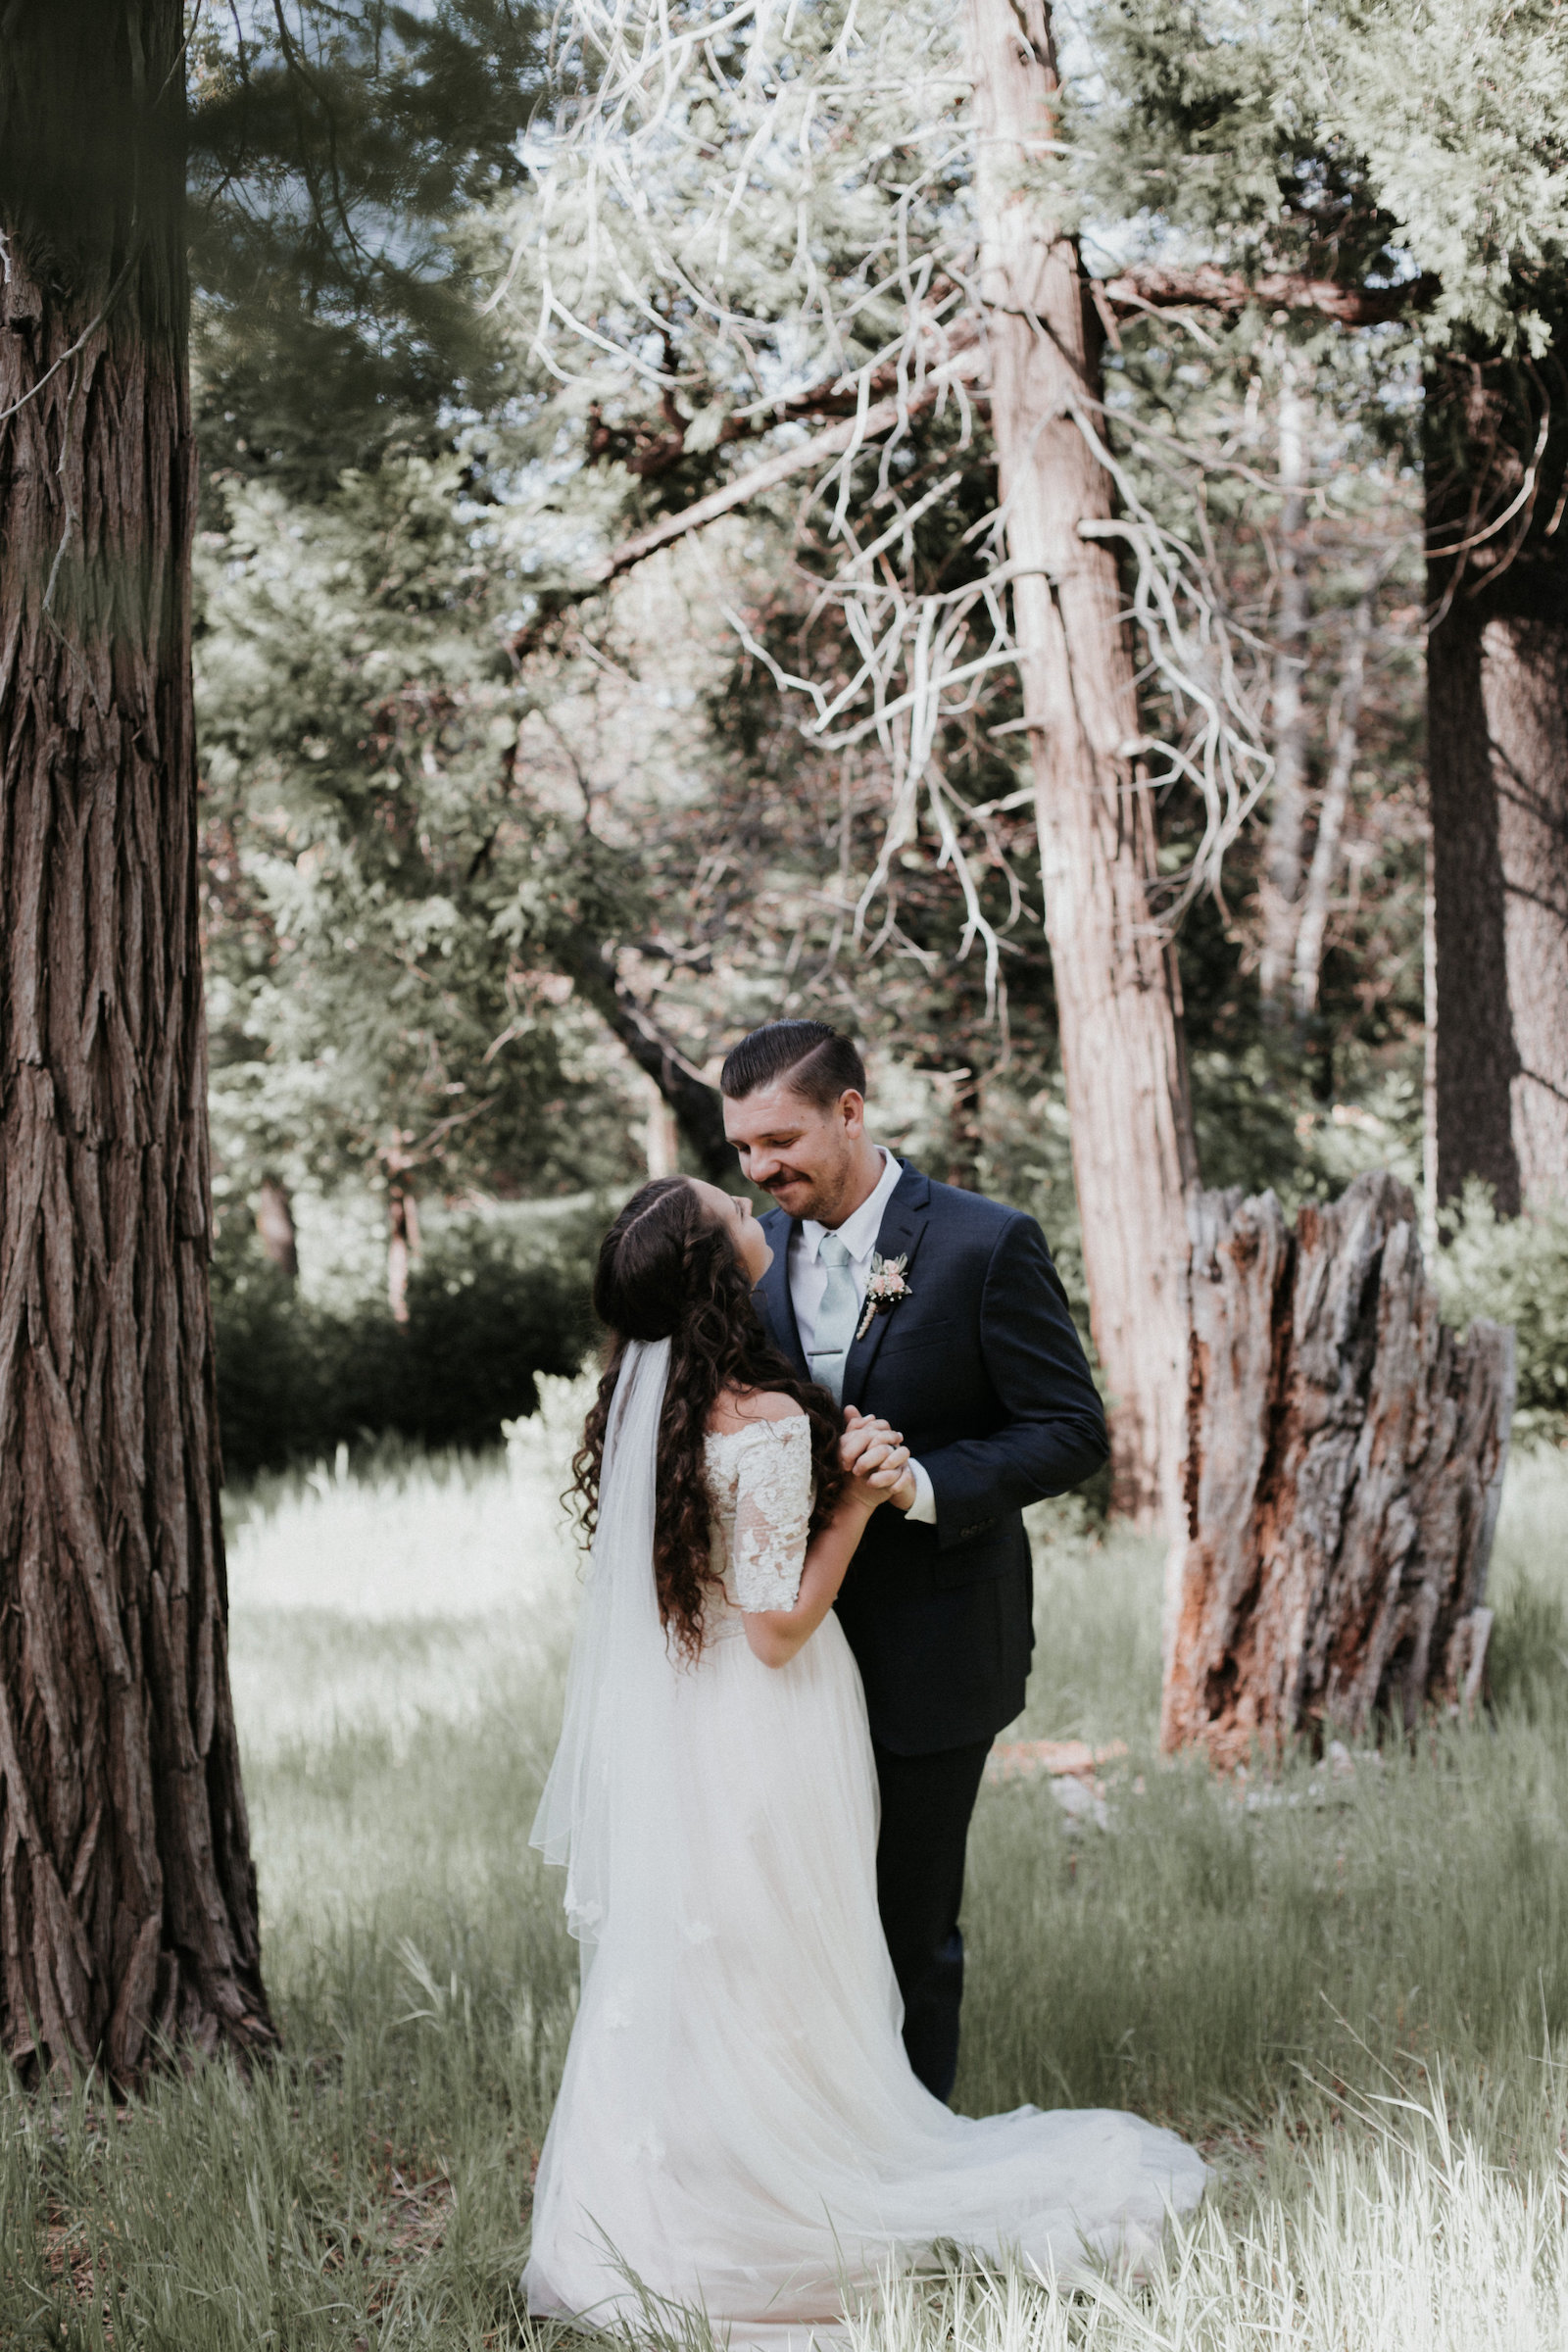 Venue- Thousand Pines, Crestline, Ca; Photographer- Jonni Lundy Studios; Florals- Bakery- Niki's Cakes; Rentals- Party Plus; Videographer- Ben Winchell; Catering- Lucilles BBQ; Hair & Makeup- Rachel Gray